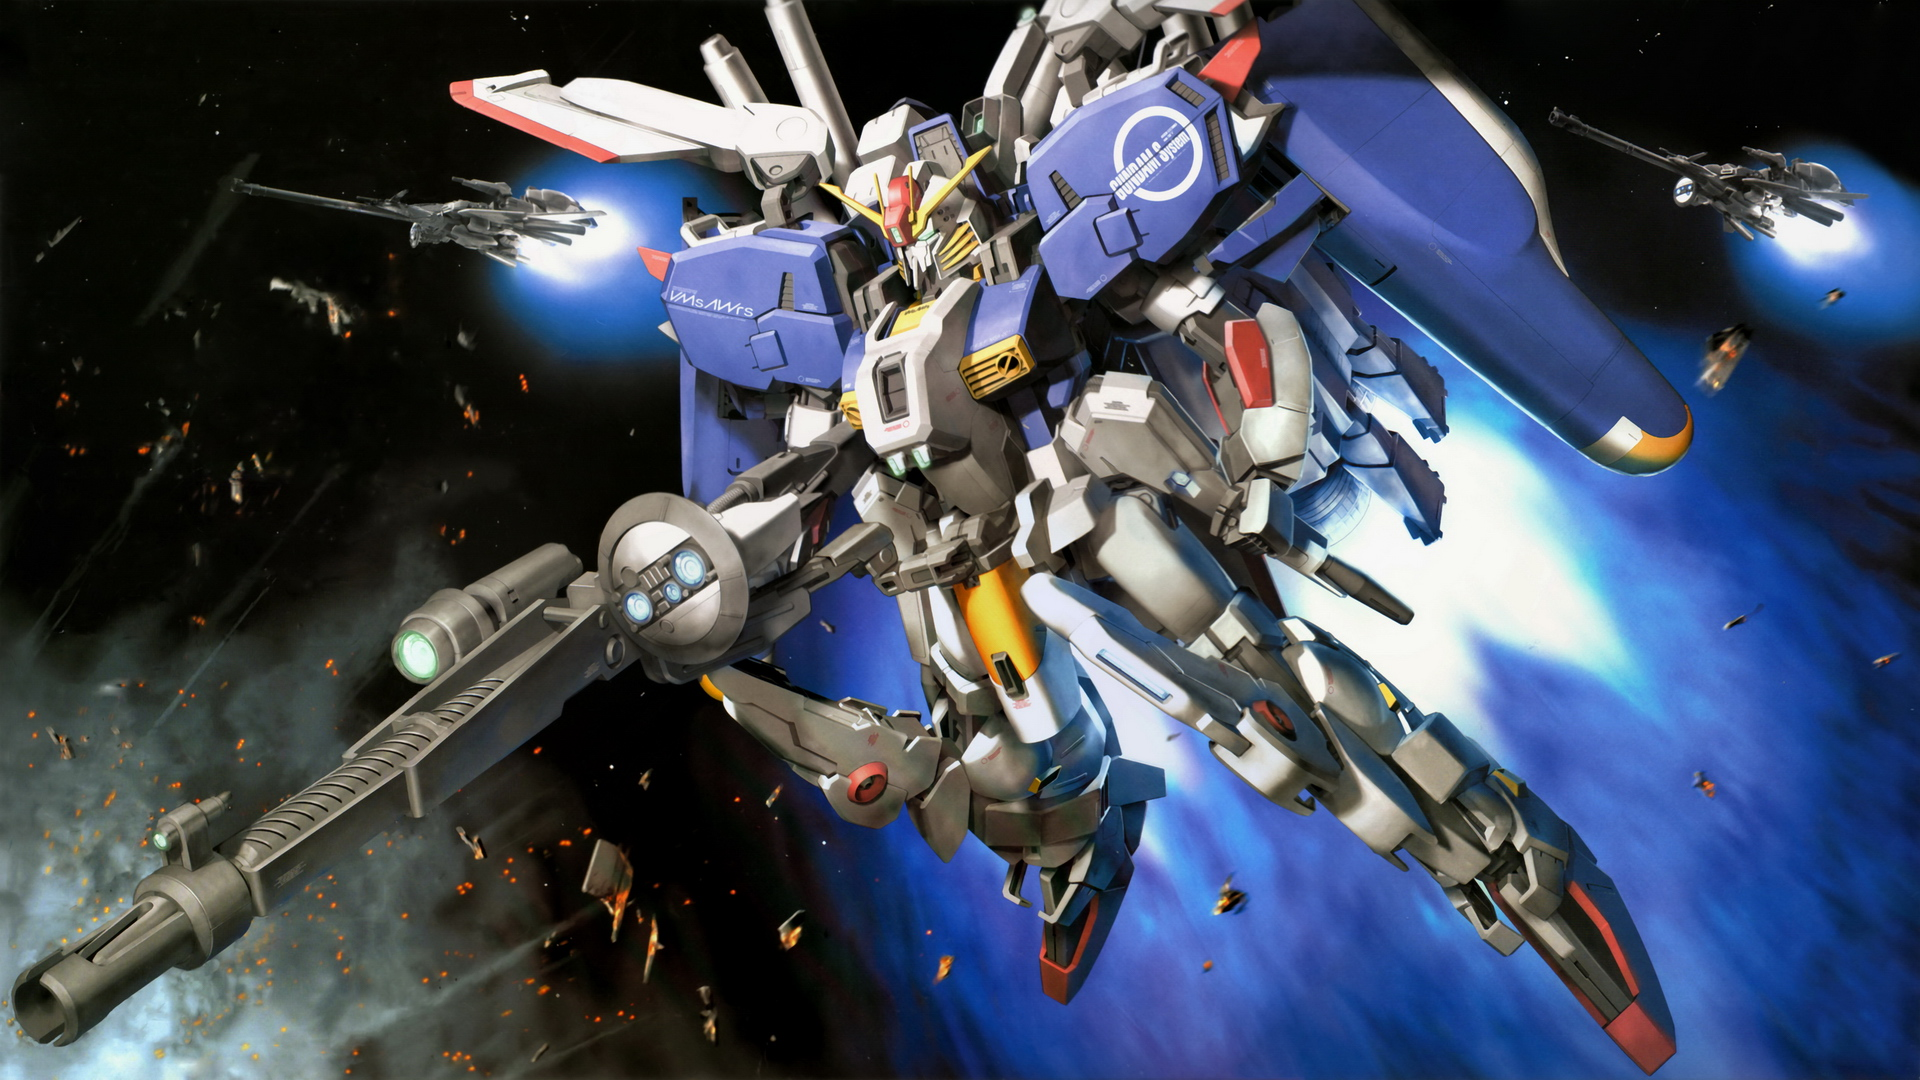 Wallpapers HD Desktop Wallpapers Gundam Wallpapers 102jpg 1920 x 1920x1080